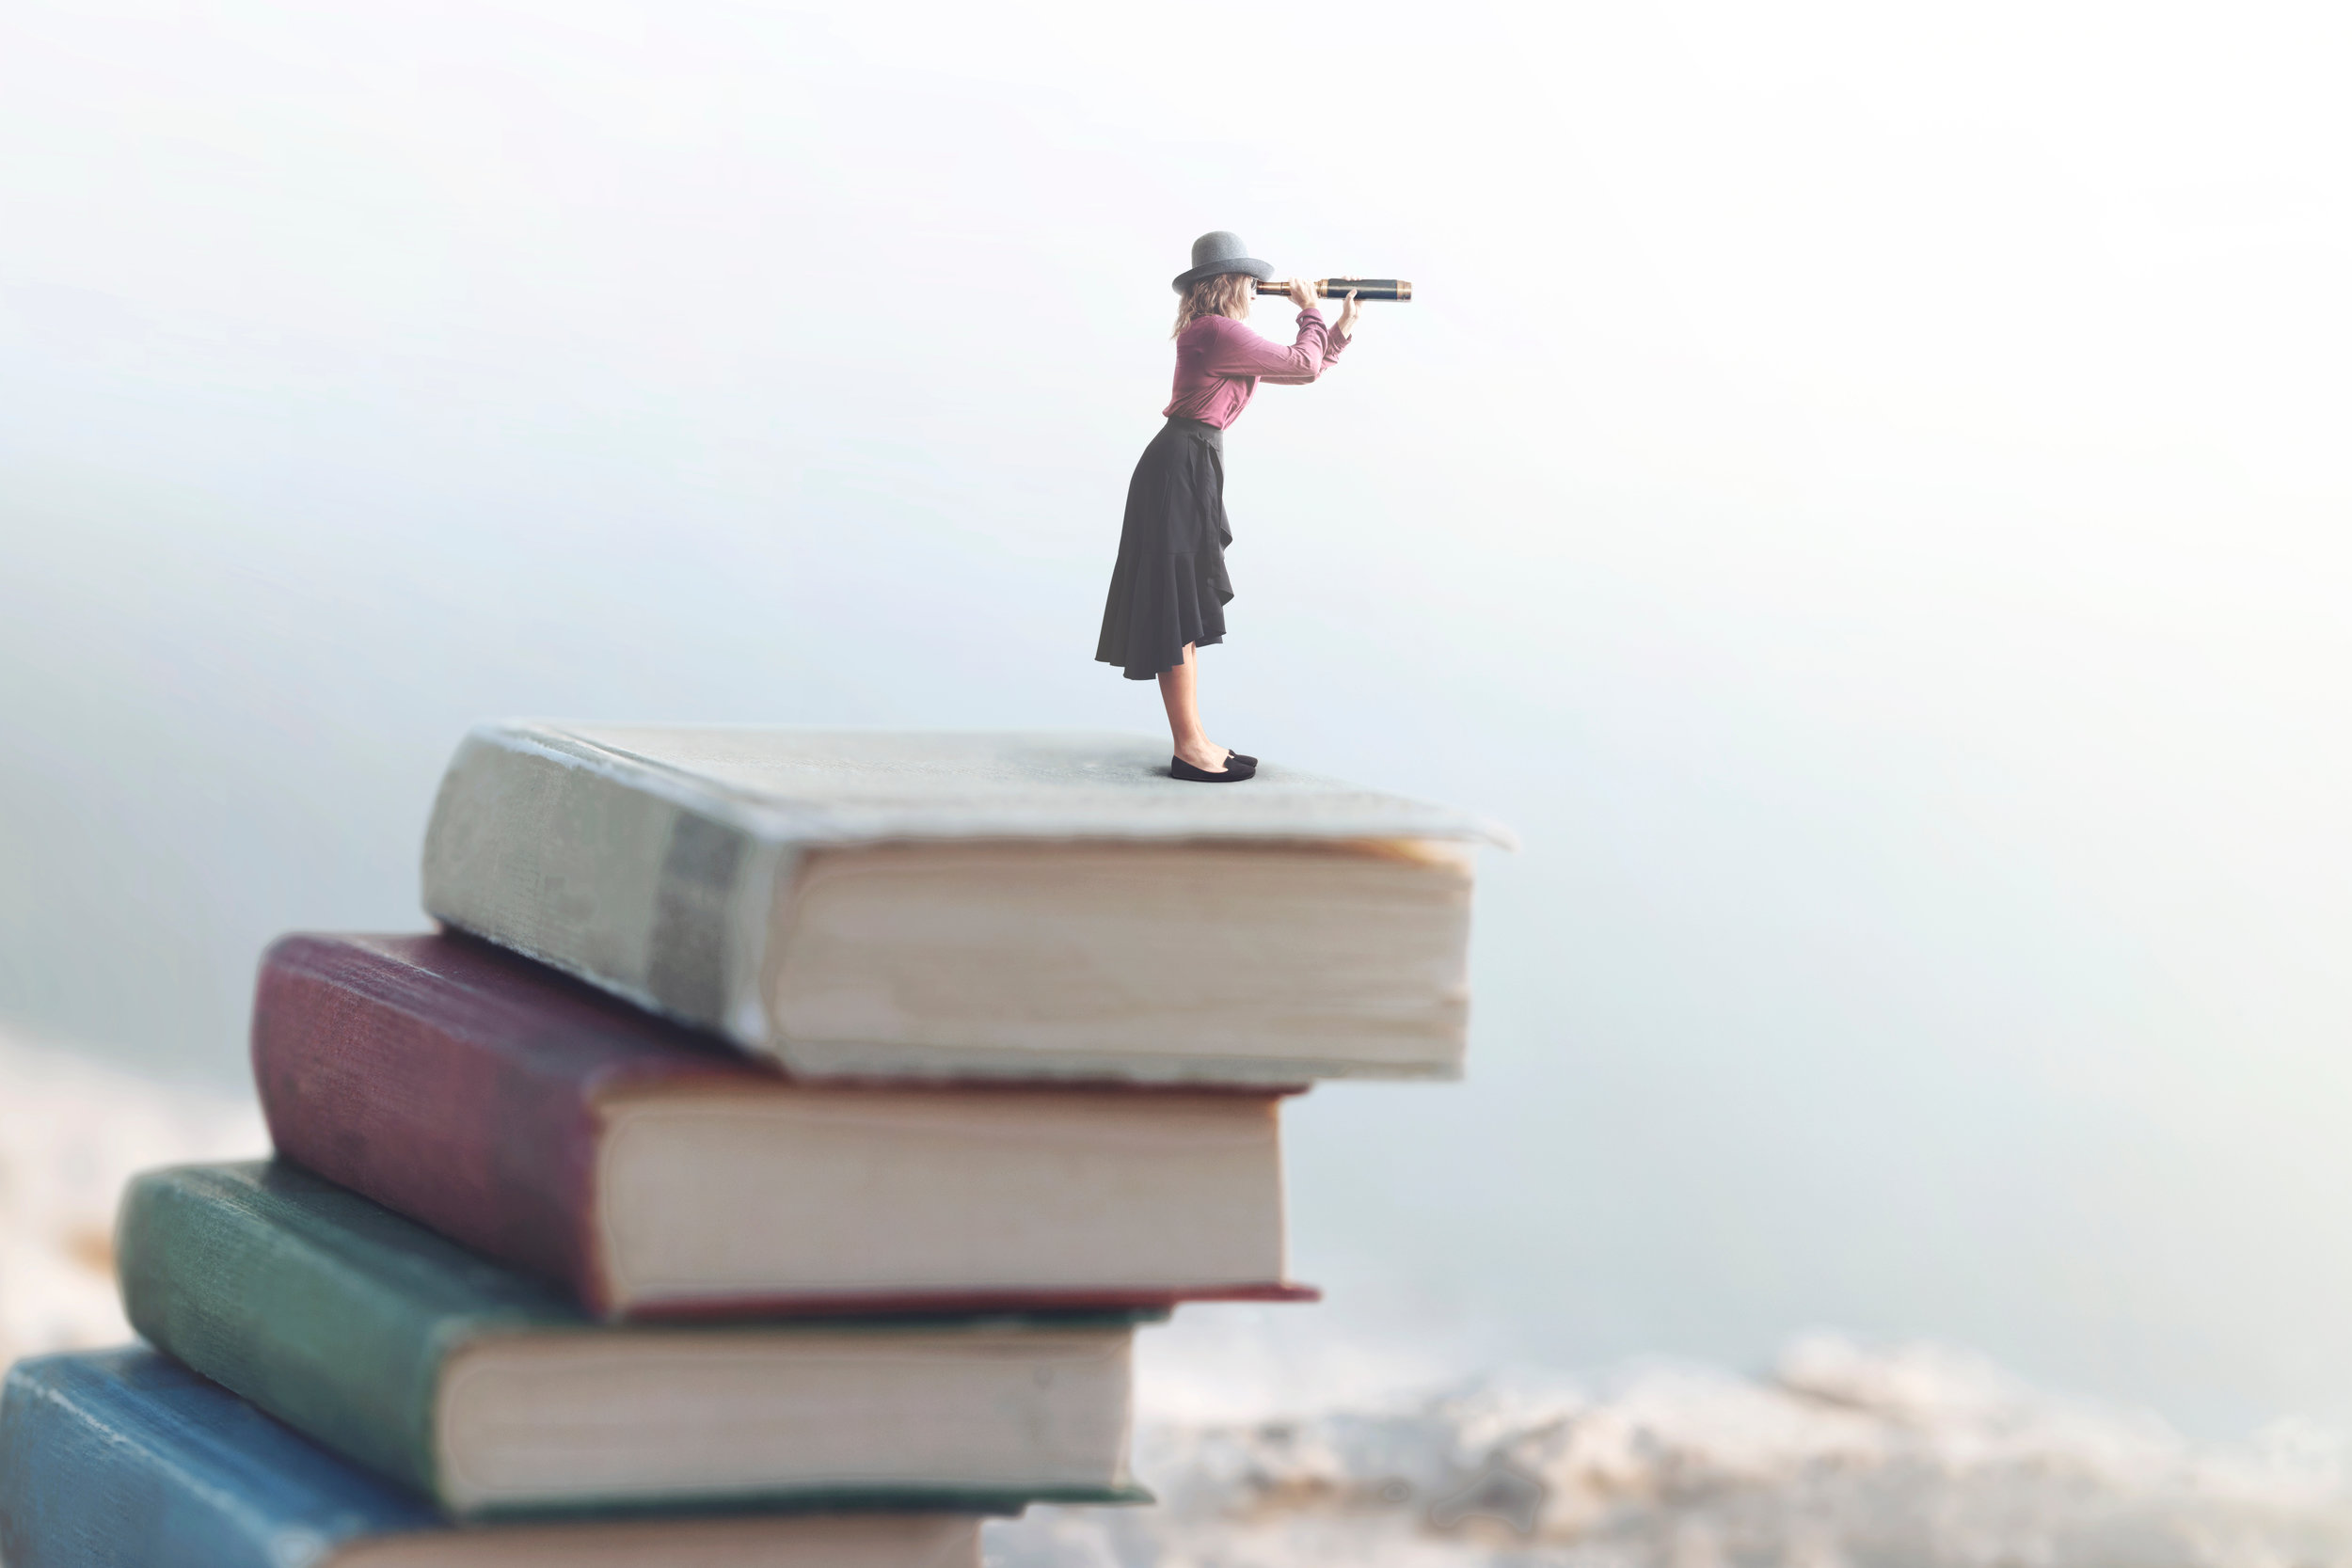 Woman Standing on Book.jpg